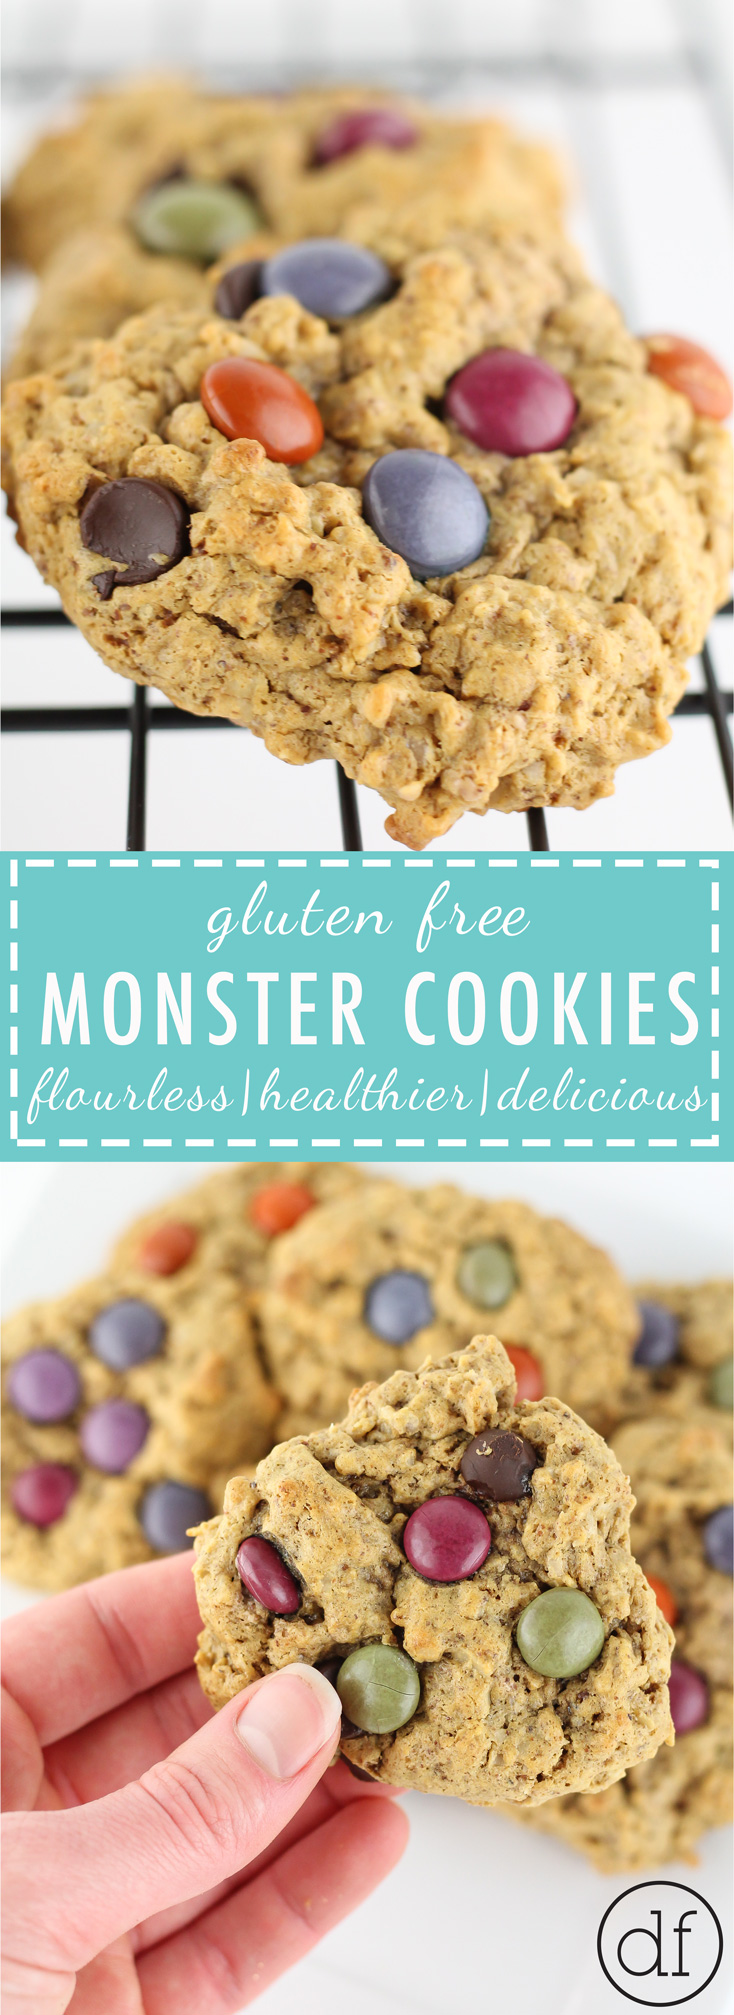 gluten free, monster cookies, christmas cookies, healthy monster cookies, define fettle, healthy christmas cookies, low sugar, no processed sugar, healthy treats, healthy choices, easy, simple, recipe, baking, gluten free cookies,